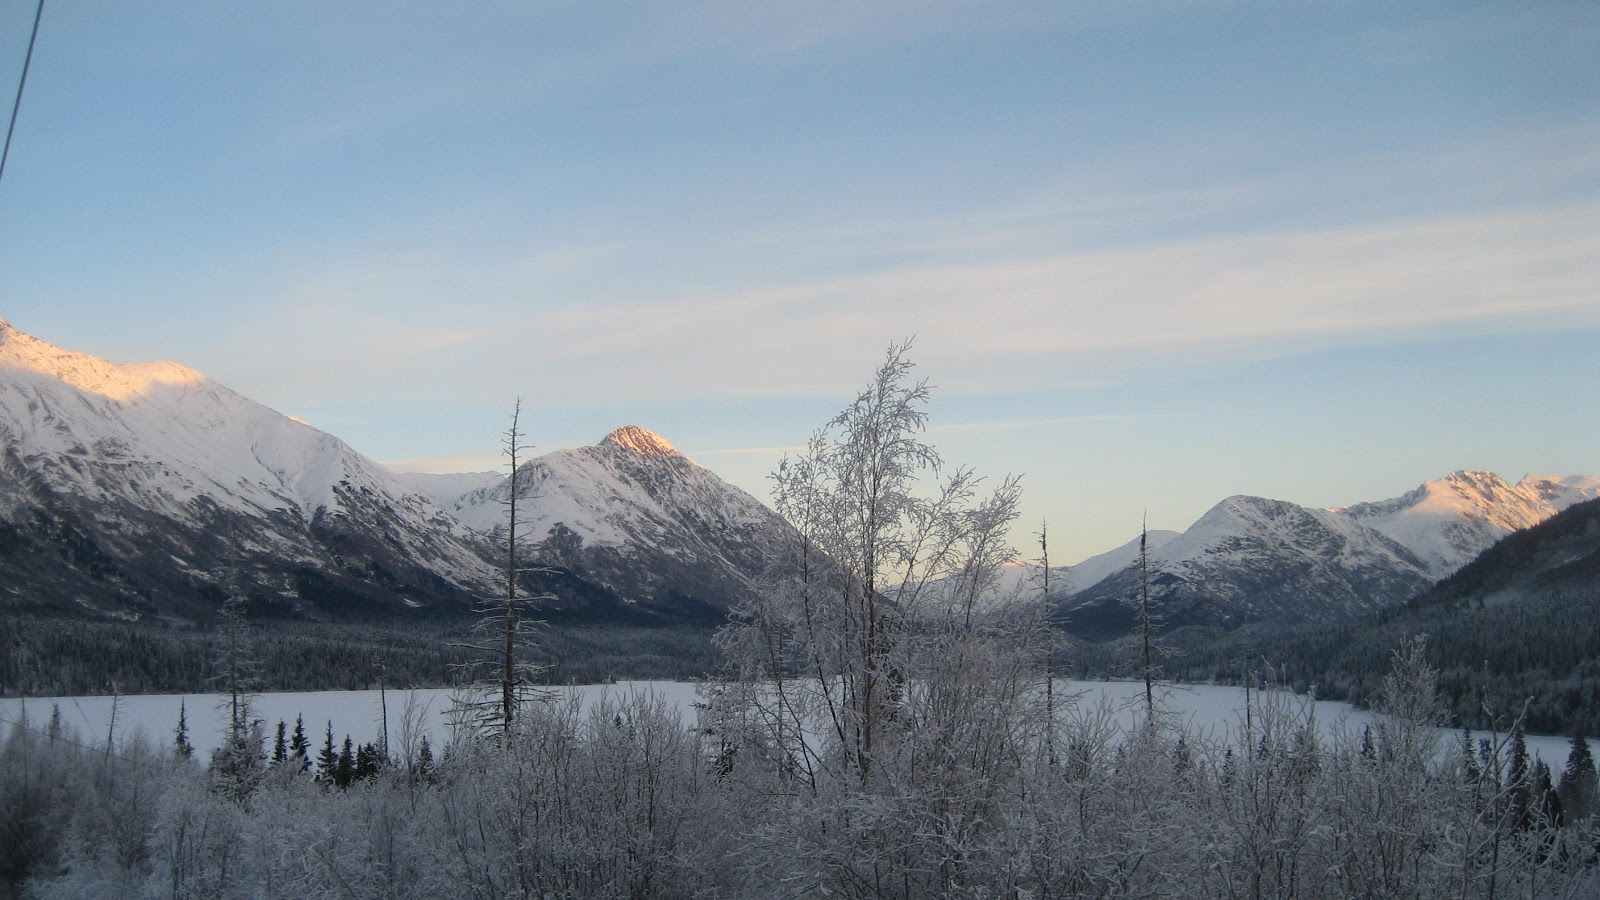 December Dawns in the Mountains